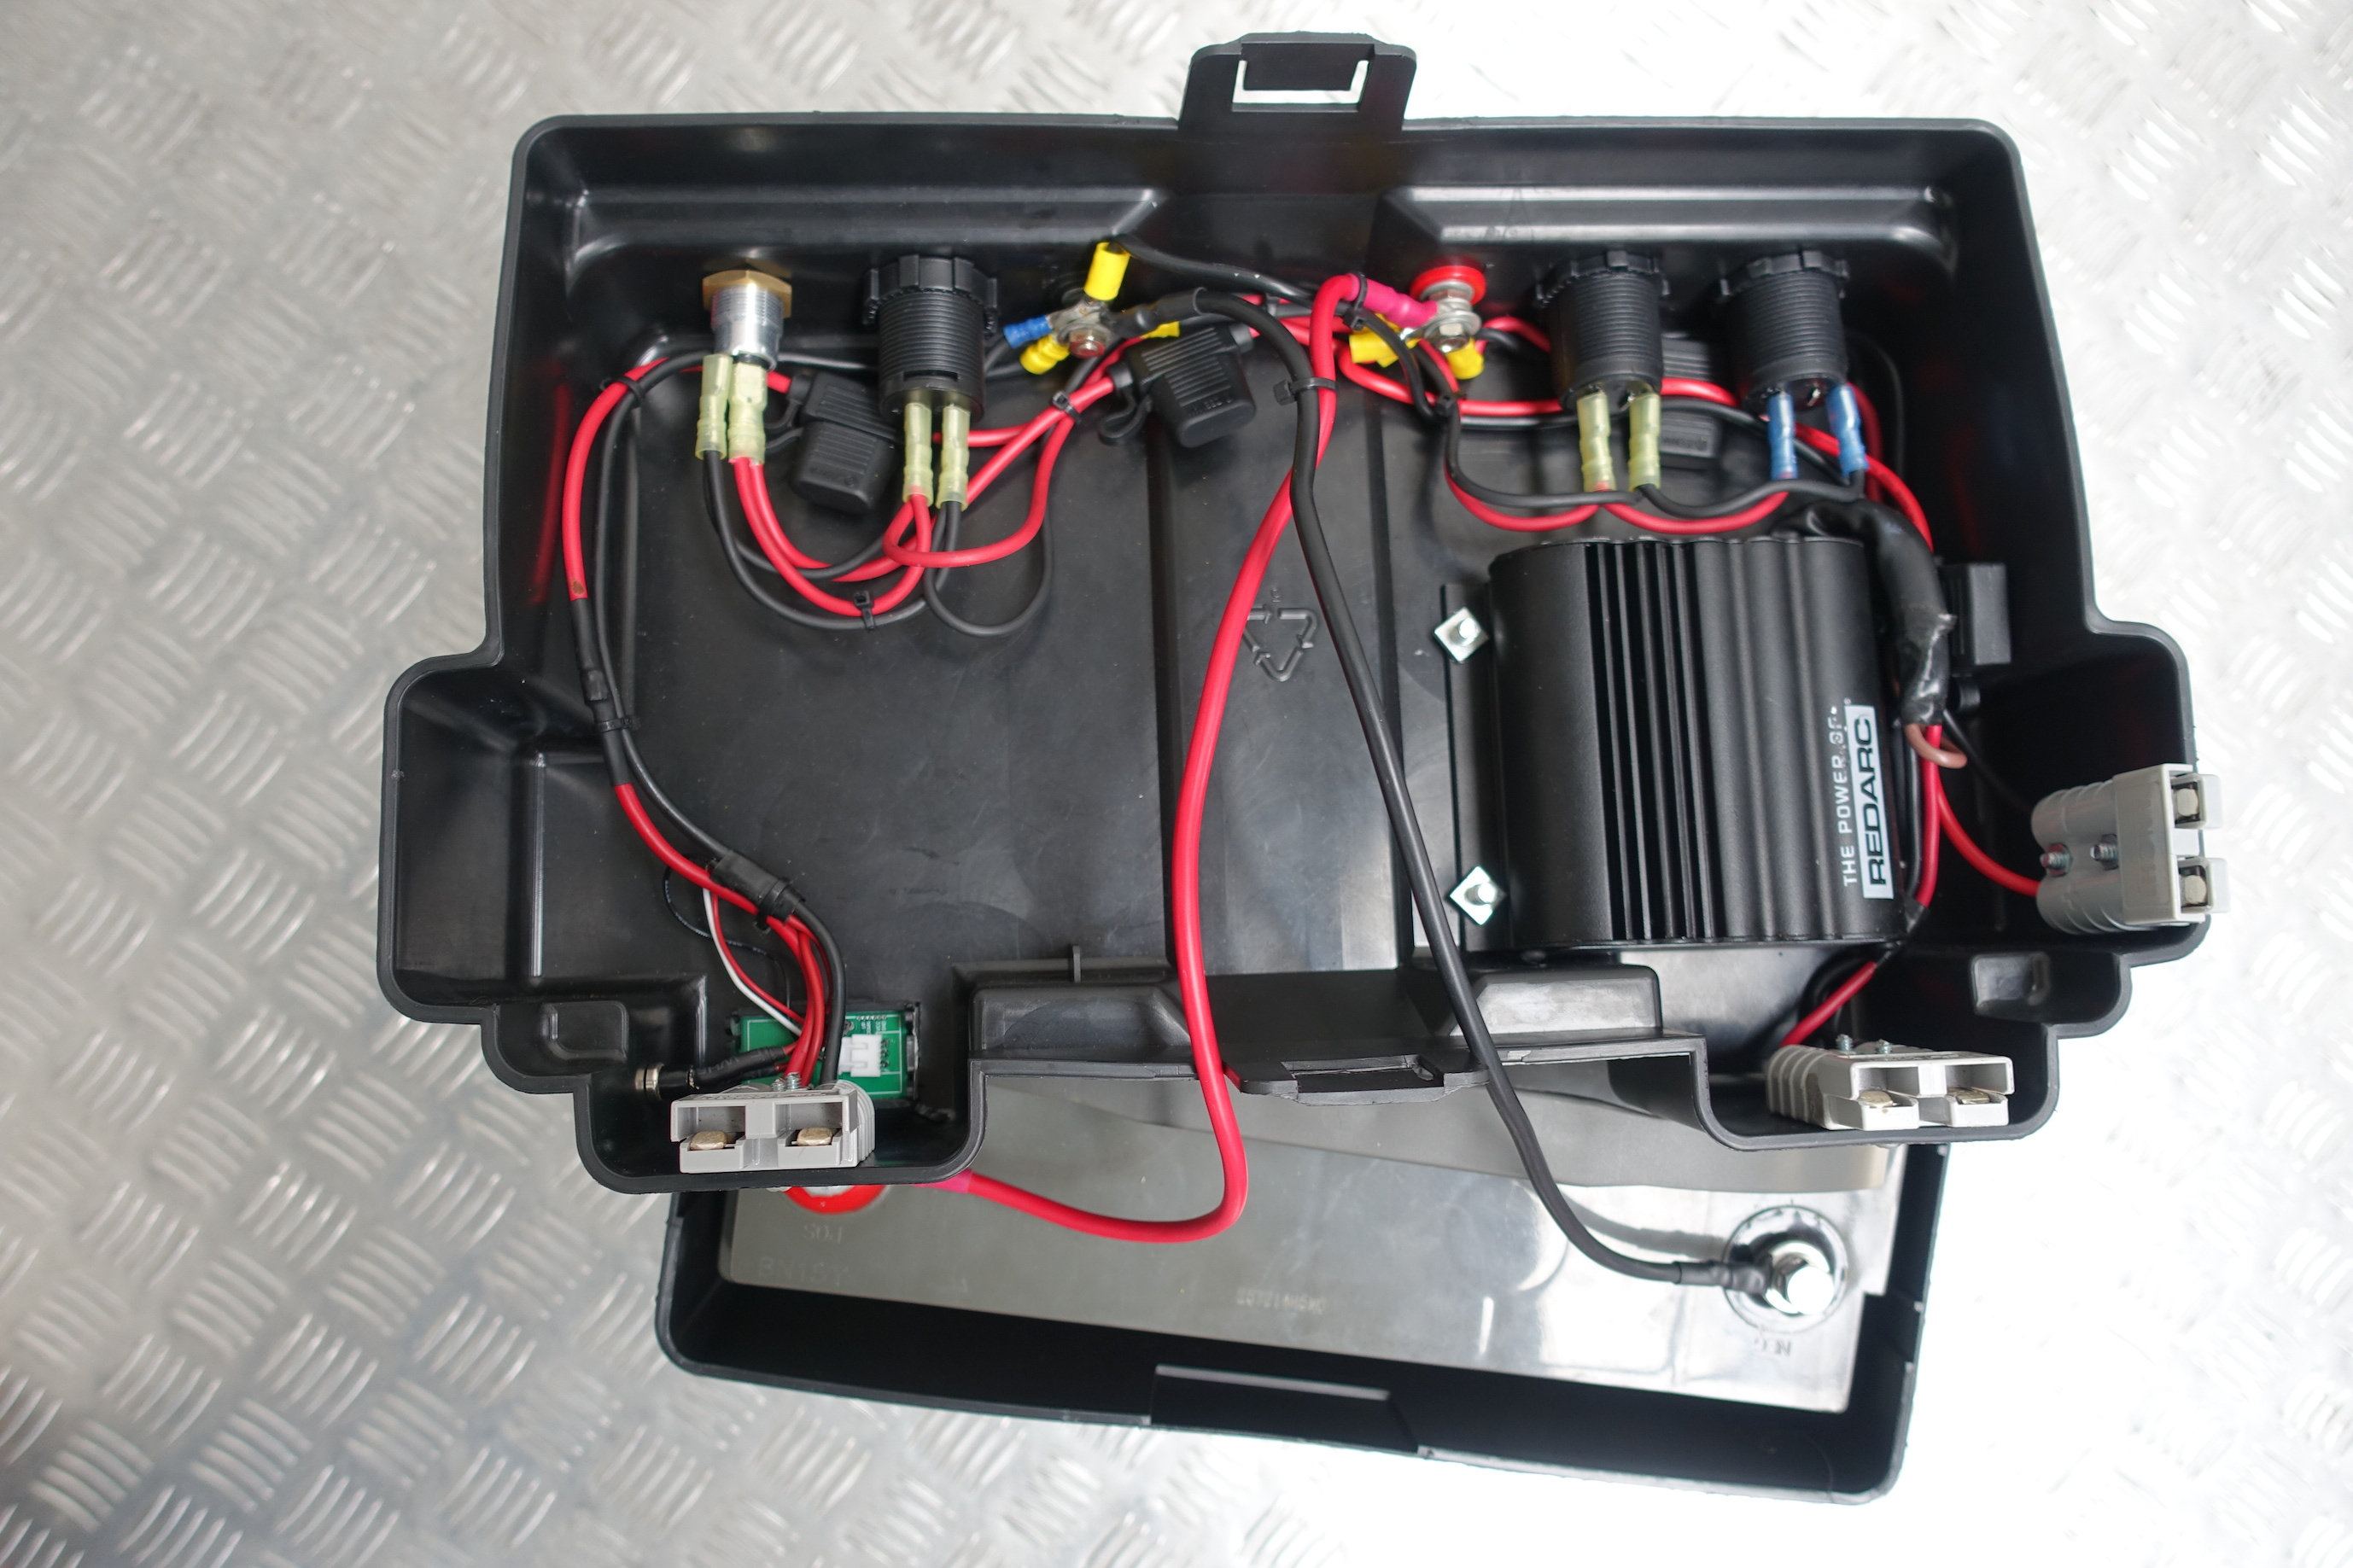 Wiring Diagram Battery Box - Wiring Diagram For Light Switch •